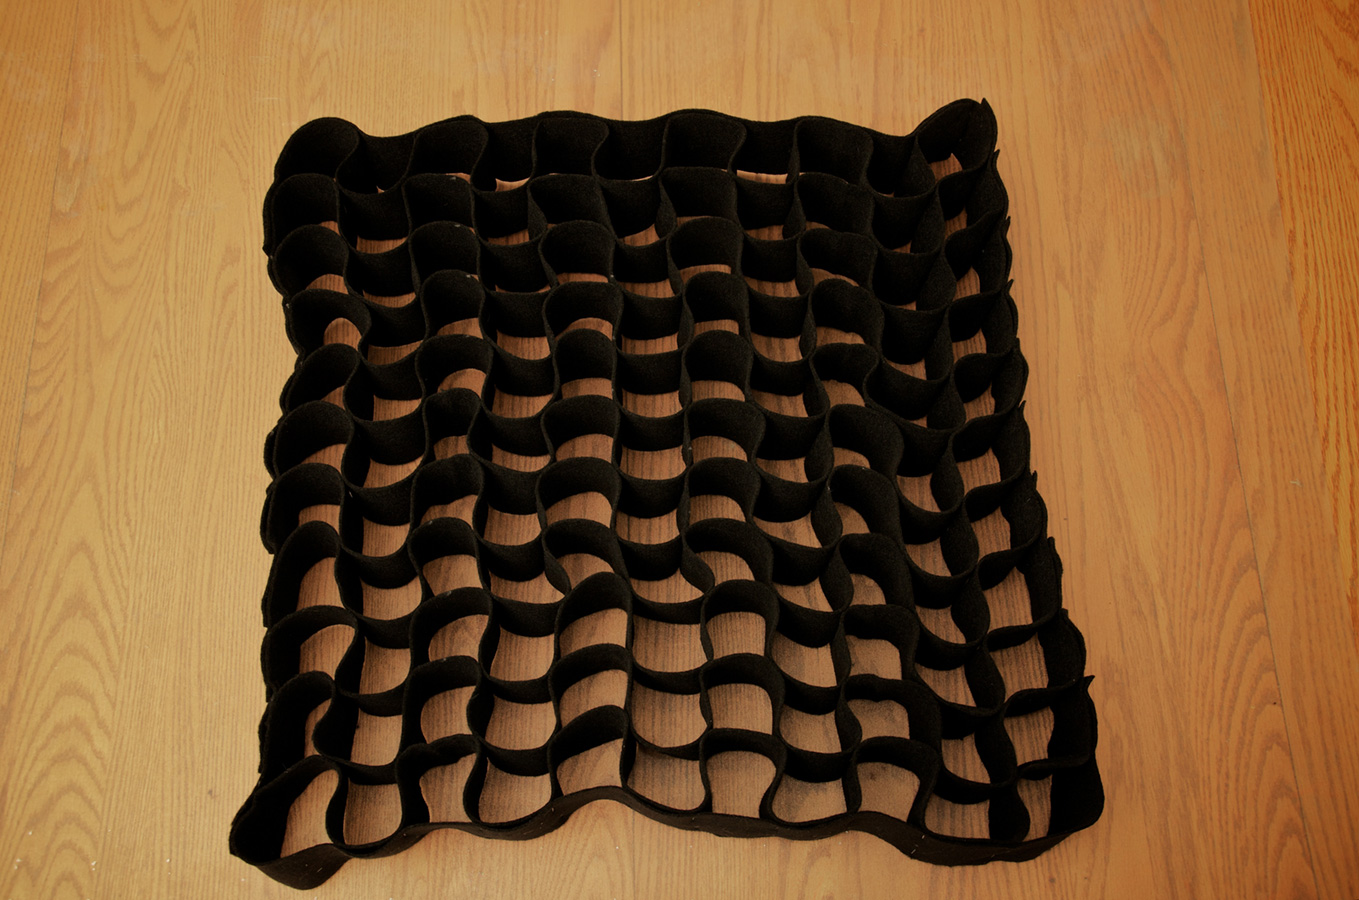 Completed DIY softbox grid made from cloth strips.